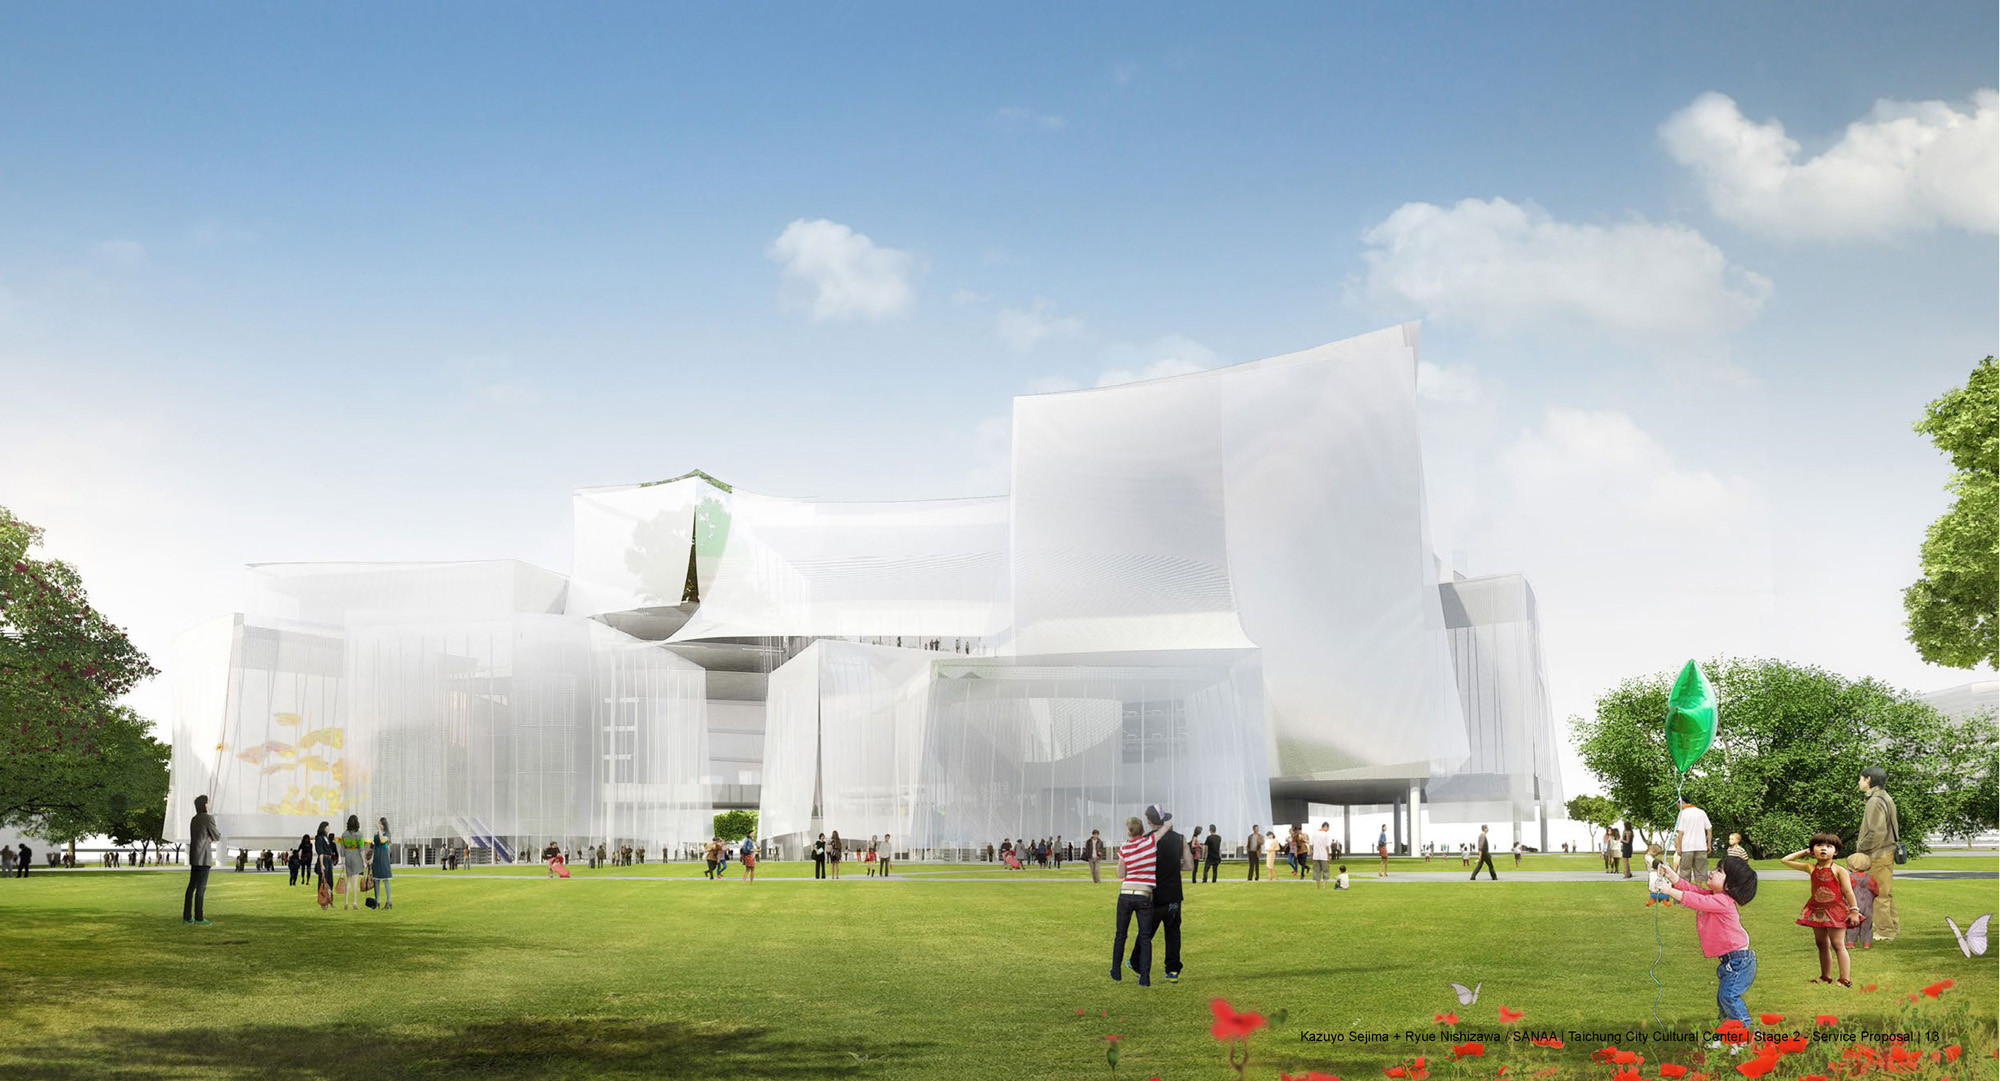 SANAA's 'Cloud Boxes' Wins First Prize in Taichung City Competition, First Prize. Image Courtesy of SANAA via Taichung City Cultural Center